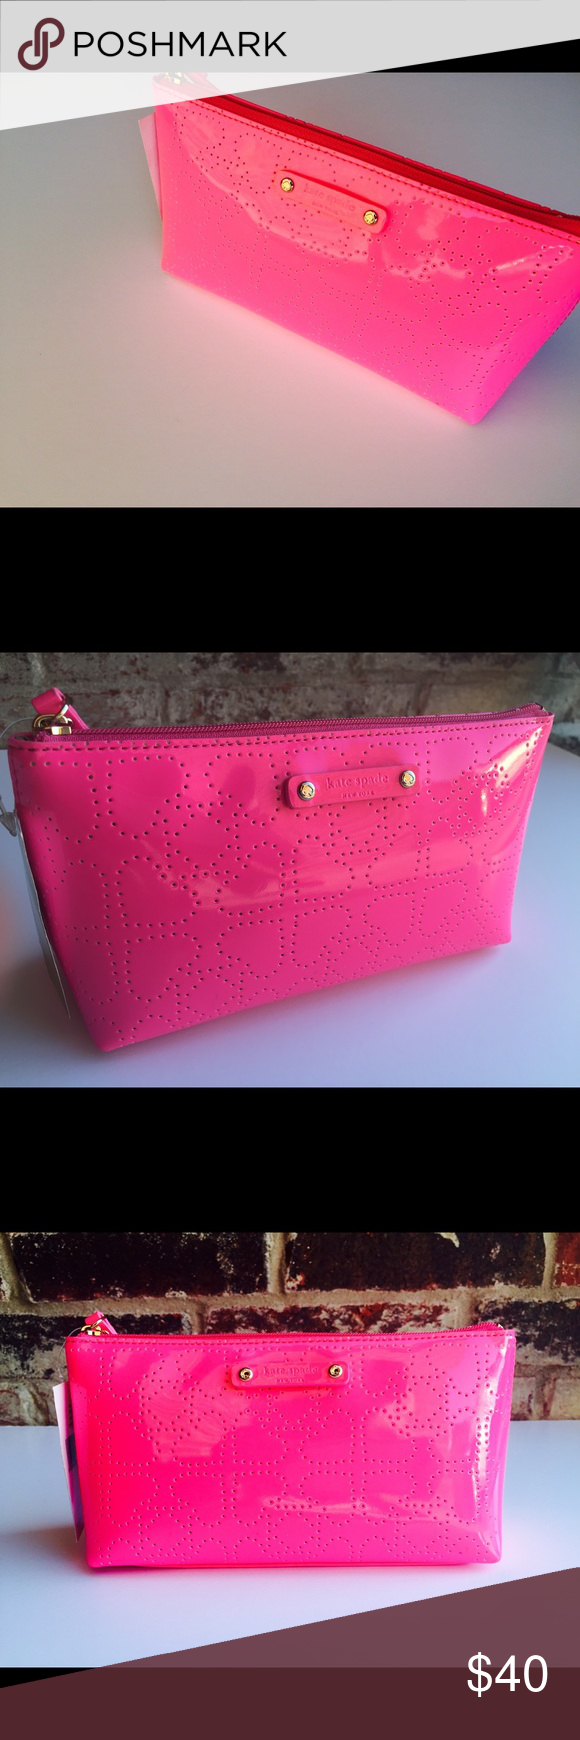 Kate Spade Bag Brand new, pink pink pink, use as a makeup case or to carry small personal items! Kate Spade Bags Clutches & Wristlets